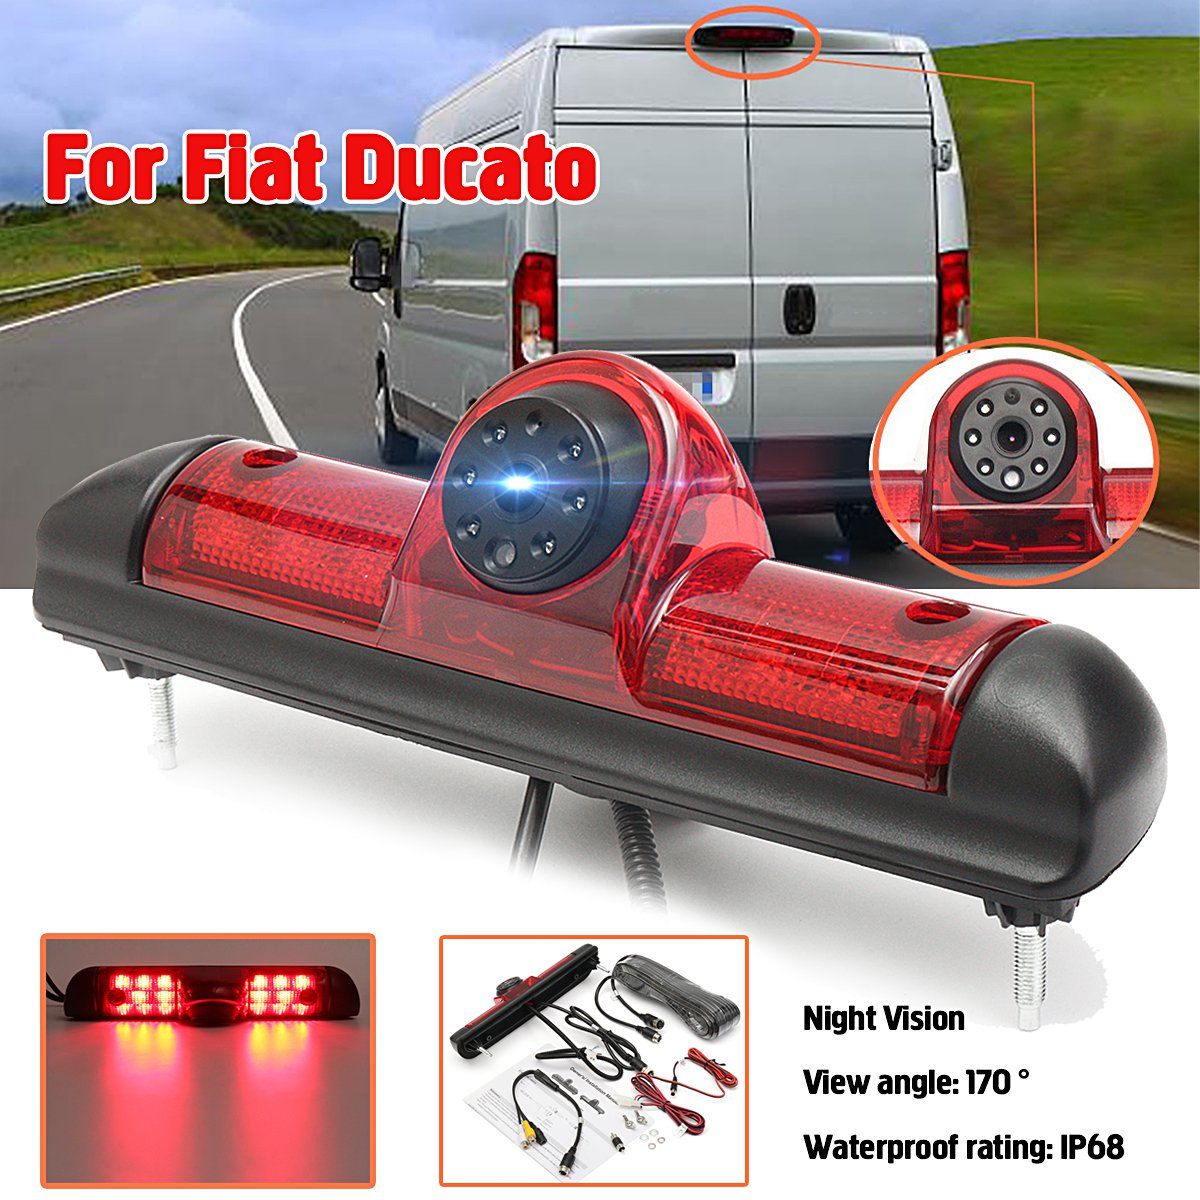 Car 170 Degree Rear View Reversing Backup Camera Brake Light Night Vision for Fiat Ducato Car Waterproof High Quality